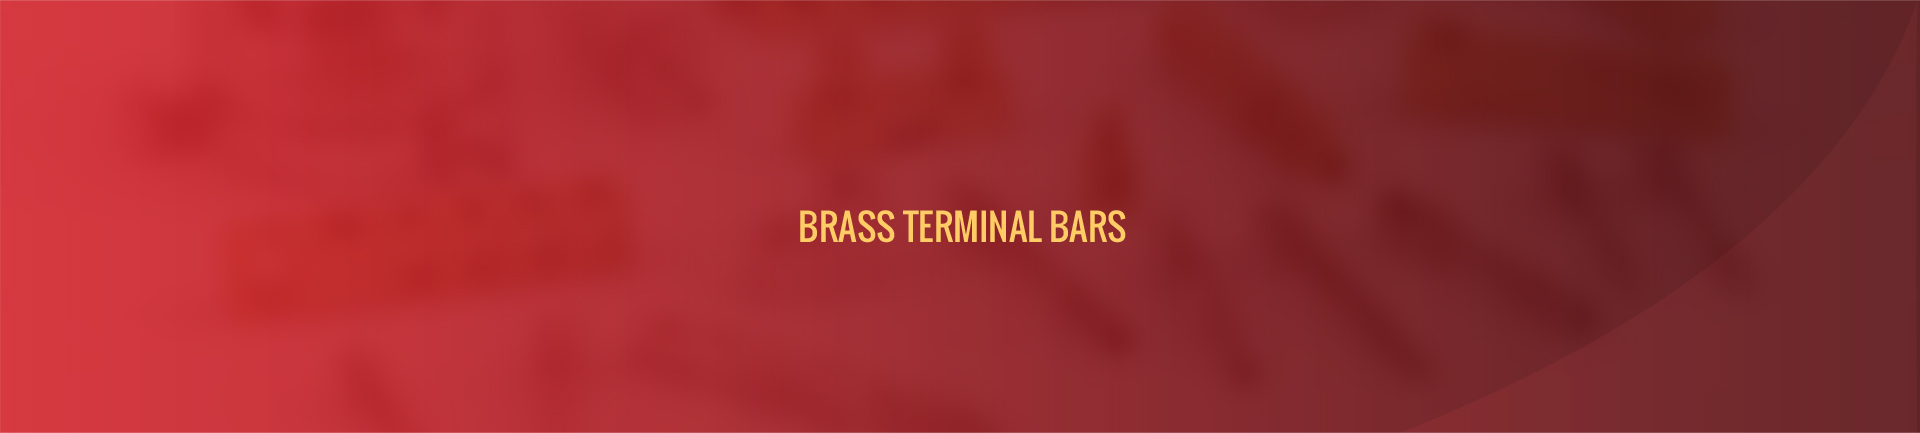 brass-terminals-bars-banner